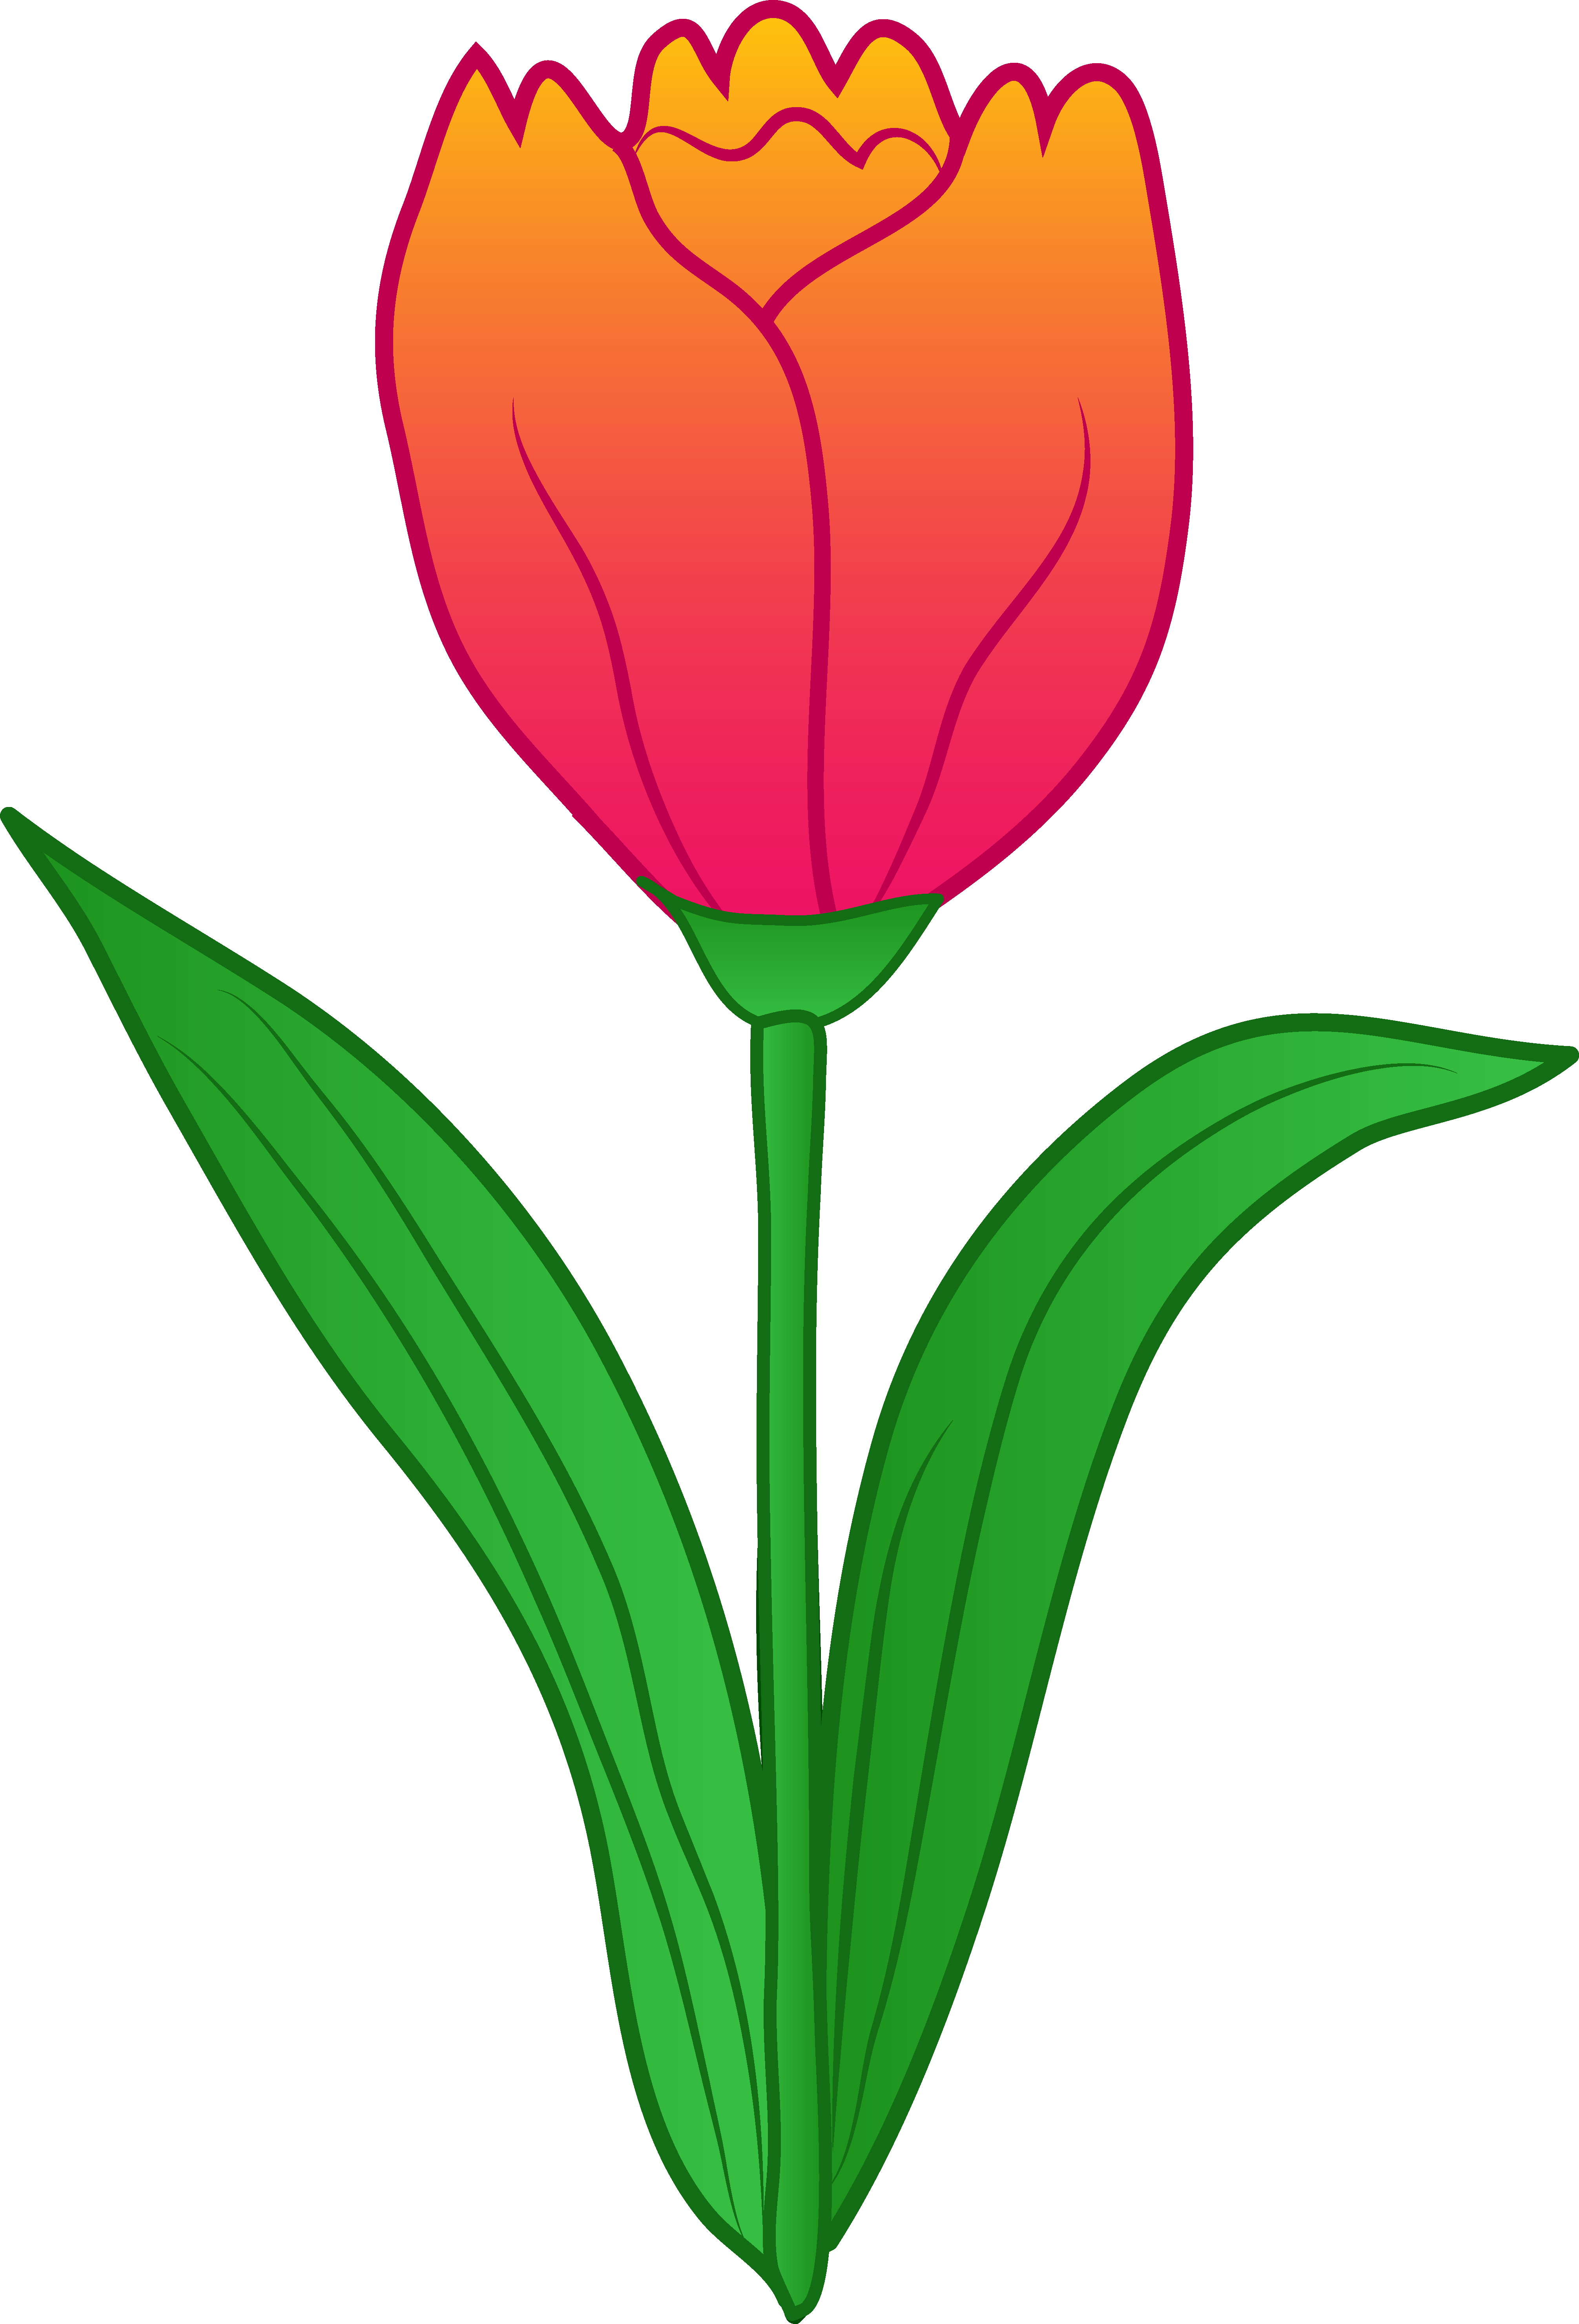 Tulip-flower-free-PNG-transparent-images-free-download-clipart-pics ... png freeuse library